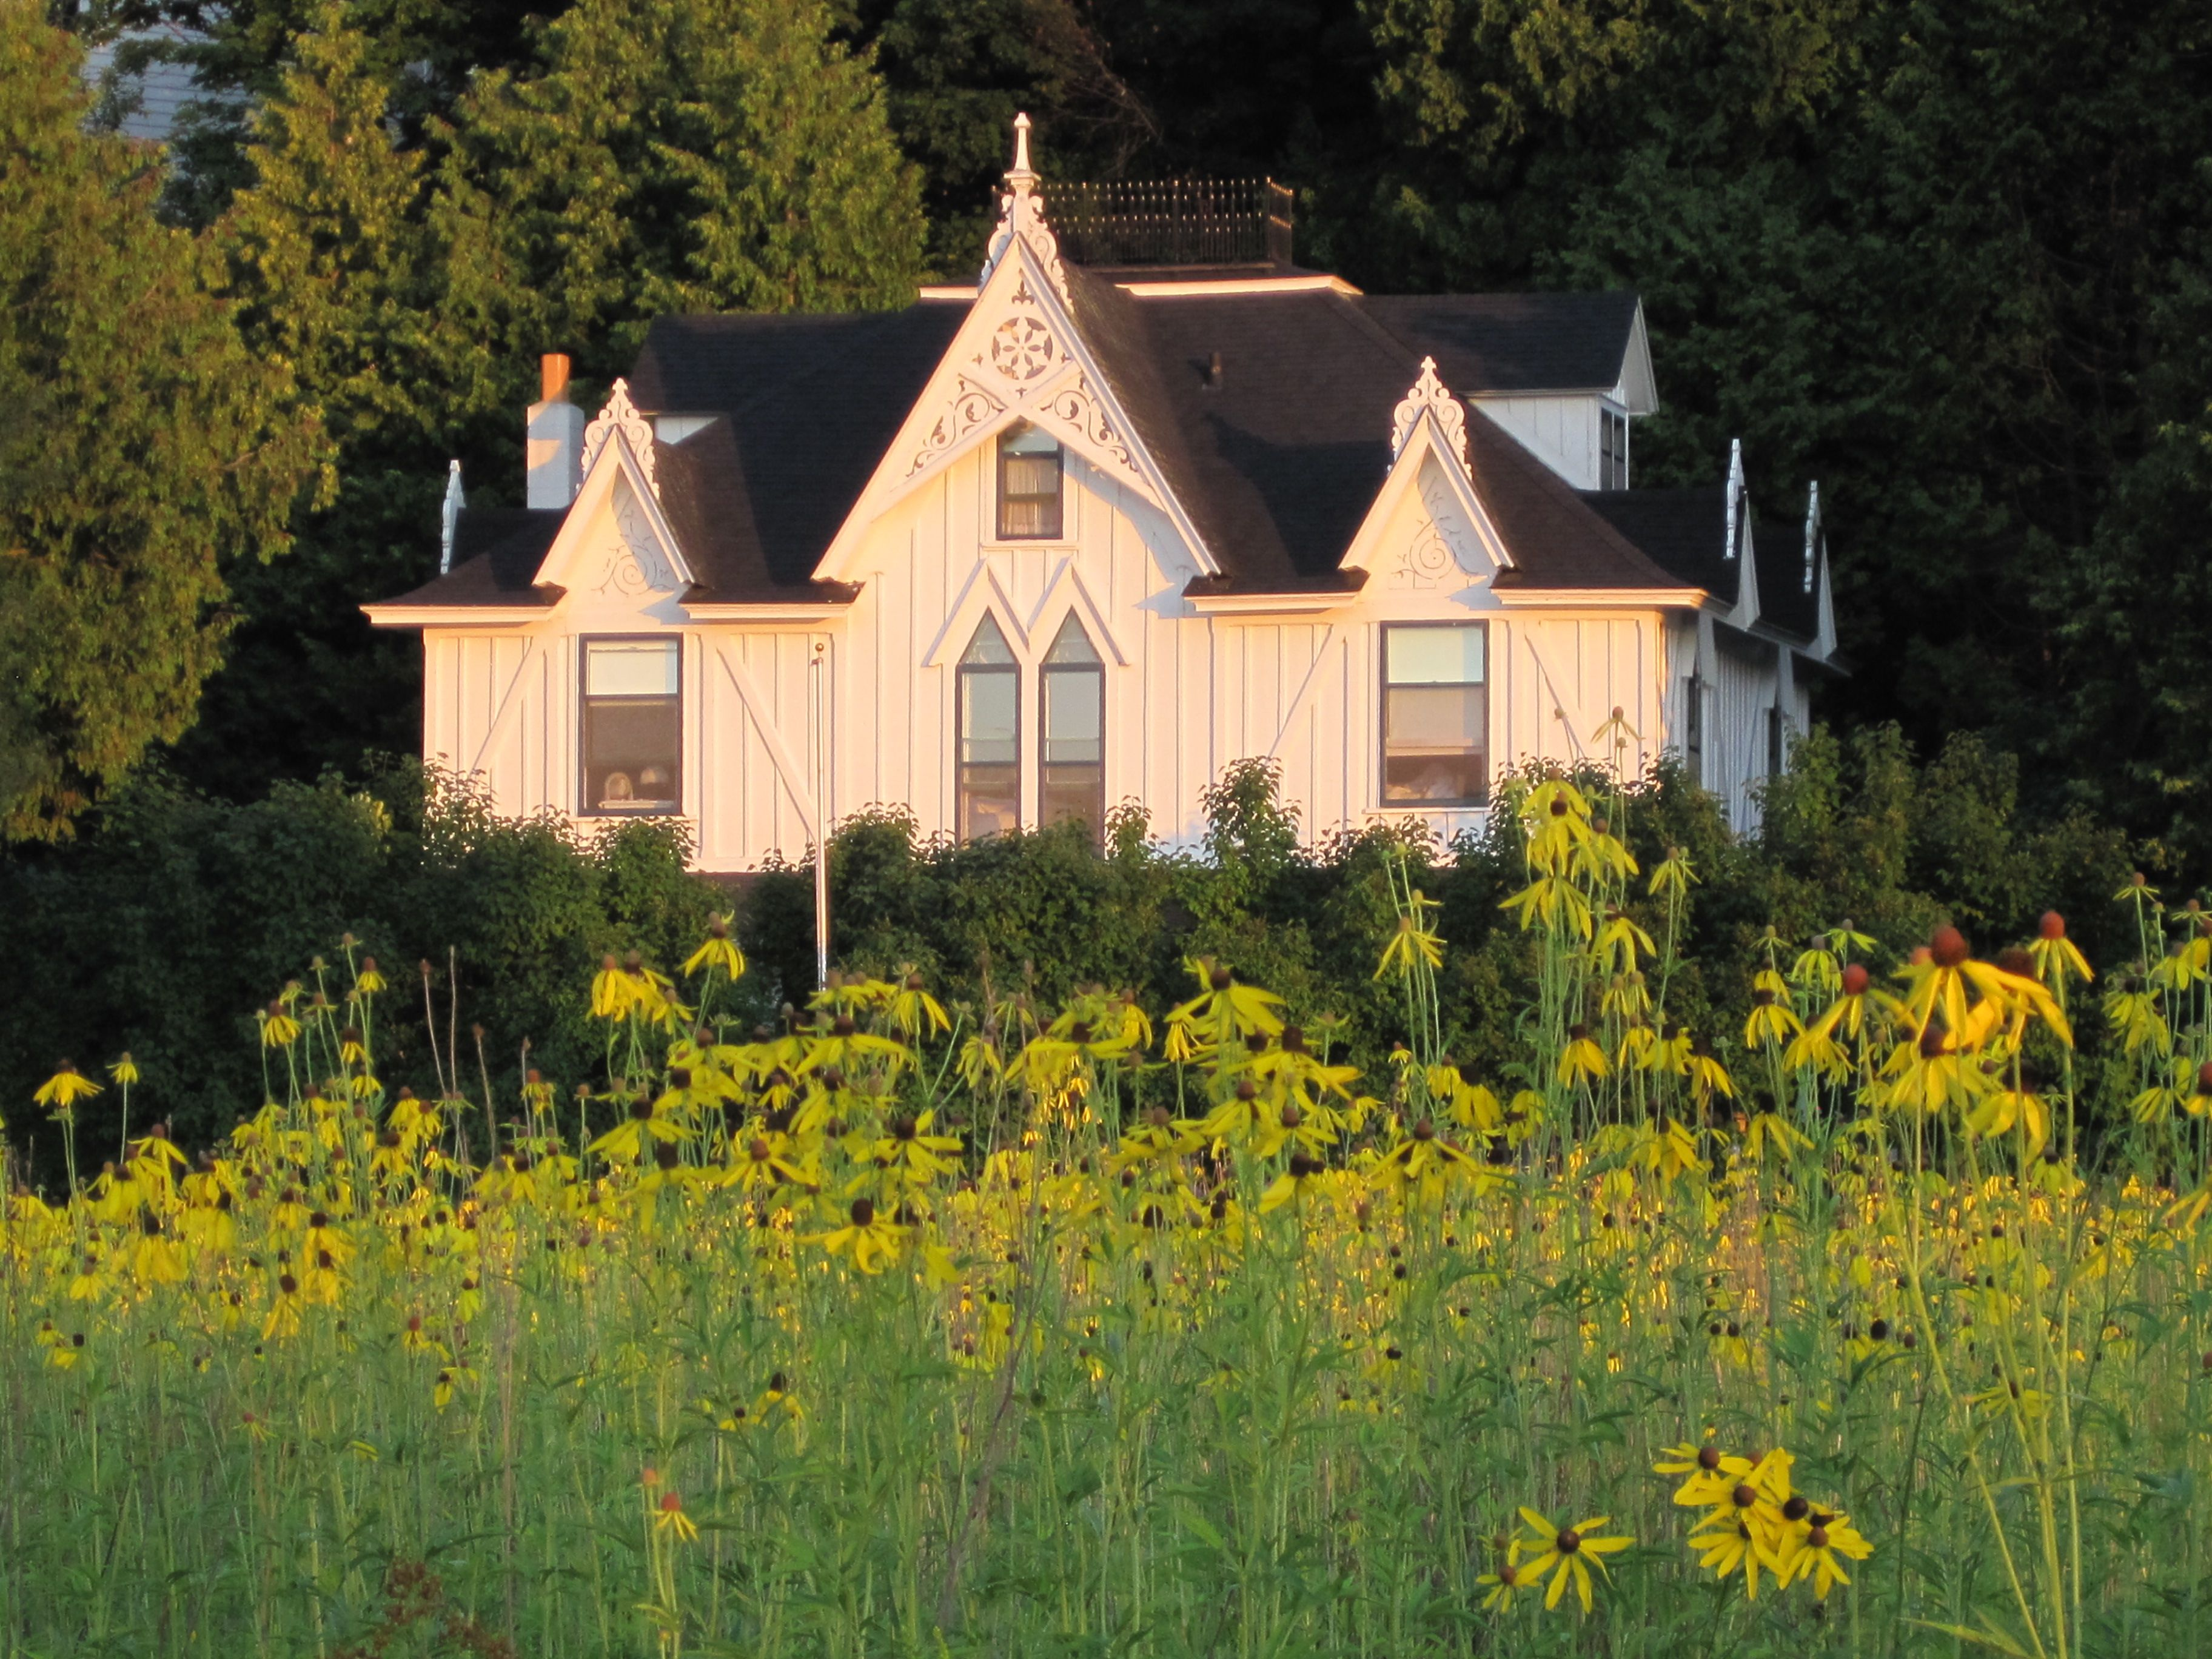 Small Point Bed Breakfast Accommodations Bed And Breakfast Mackinac Island Mission House